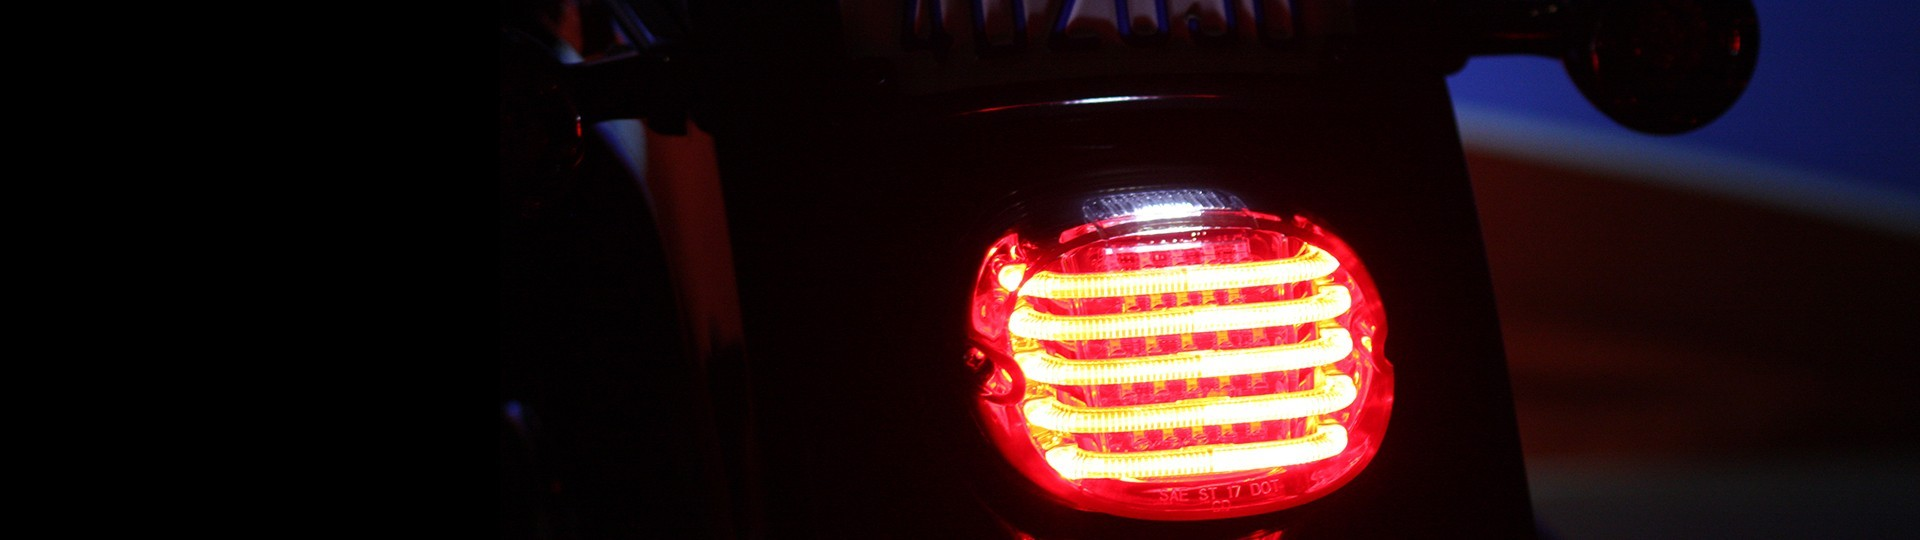 Motorcycle Led Lights By Custom Dynamics For Sale Used On Spyder Headlight Wiring Probeam Taillights